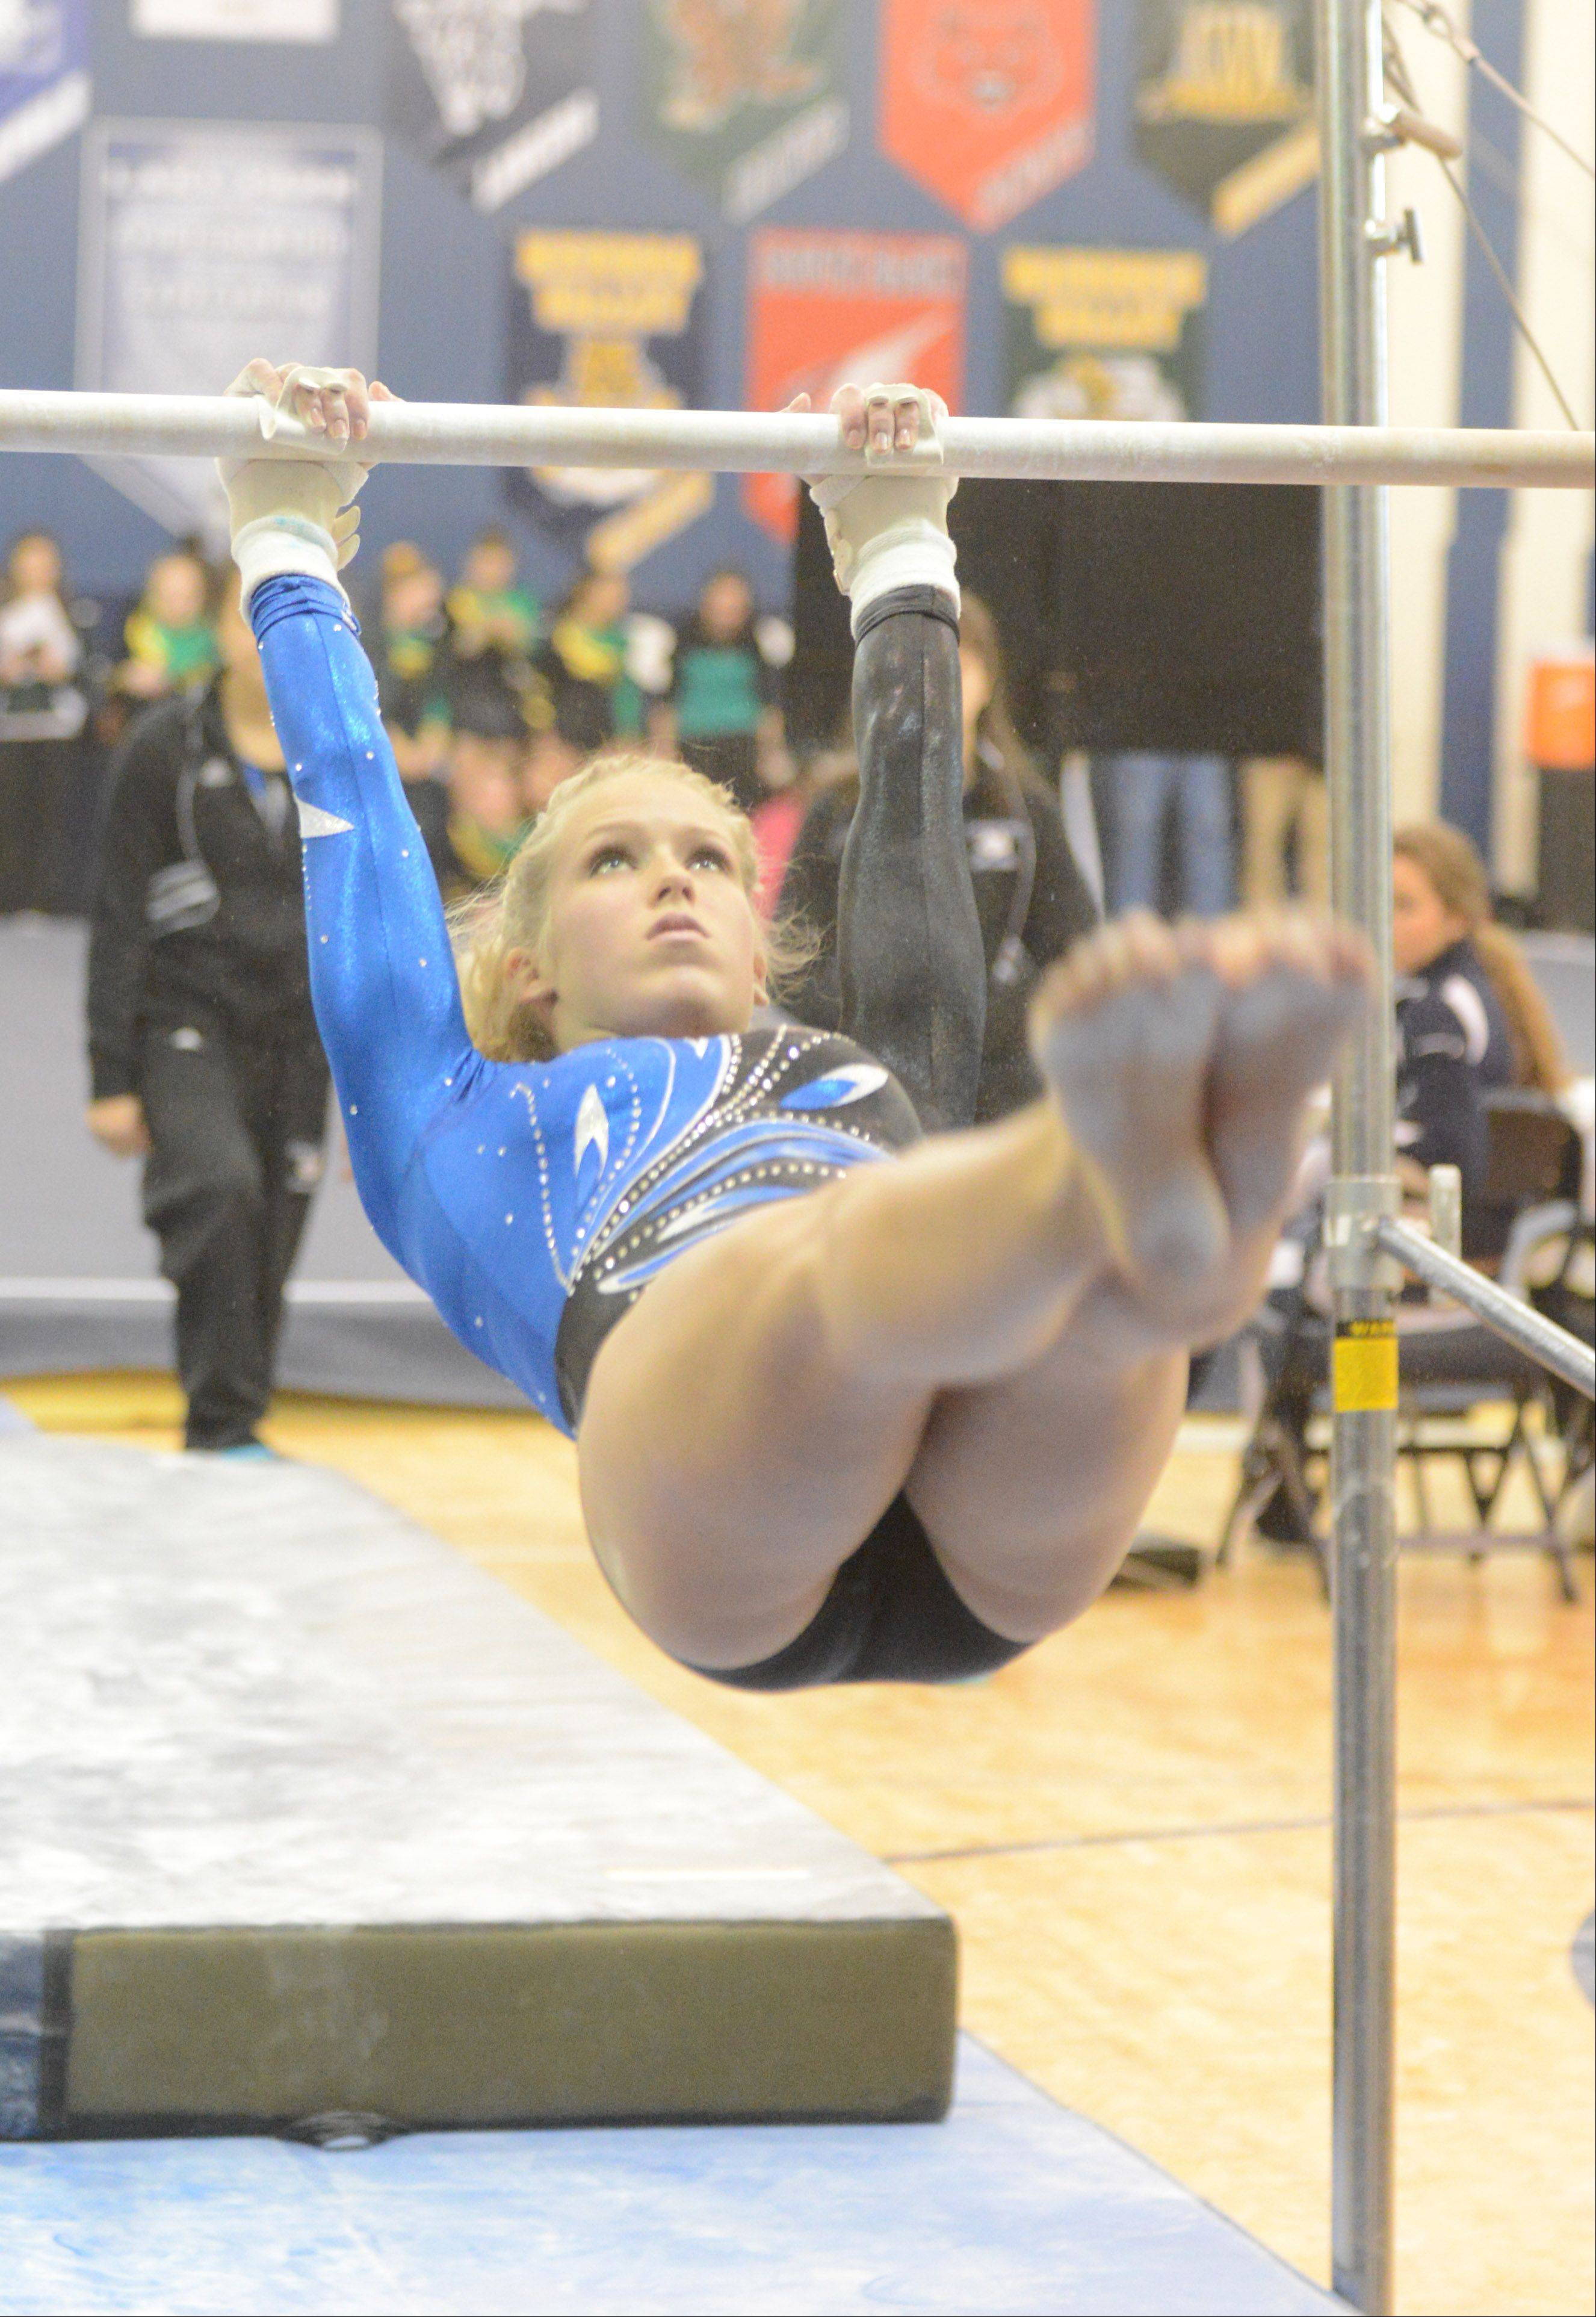 McKenna Merges of Geneva on the bars during the Upstate Eight gymnastics meet at Lake Park East Saturday.